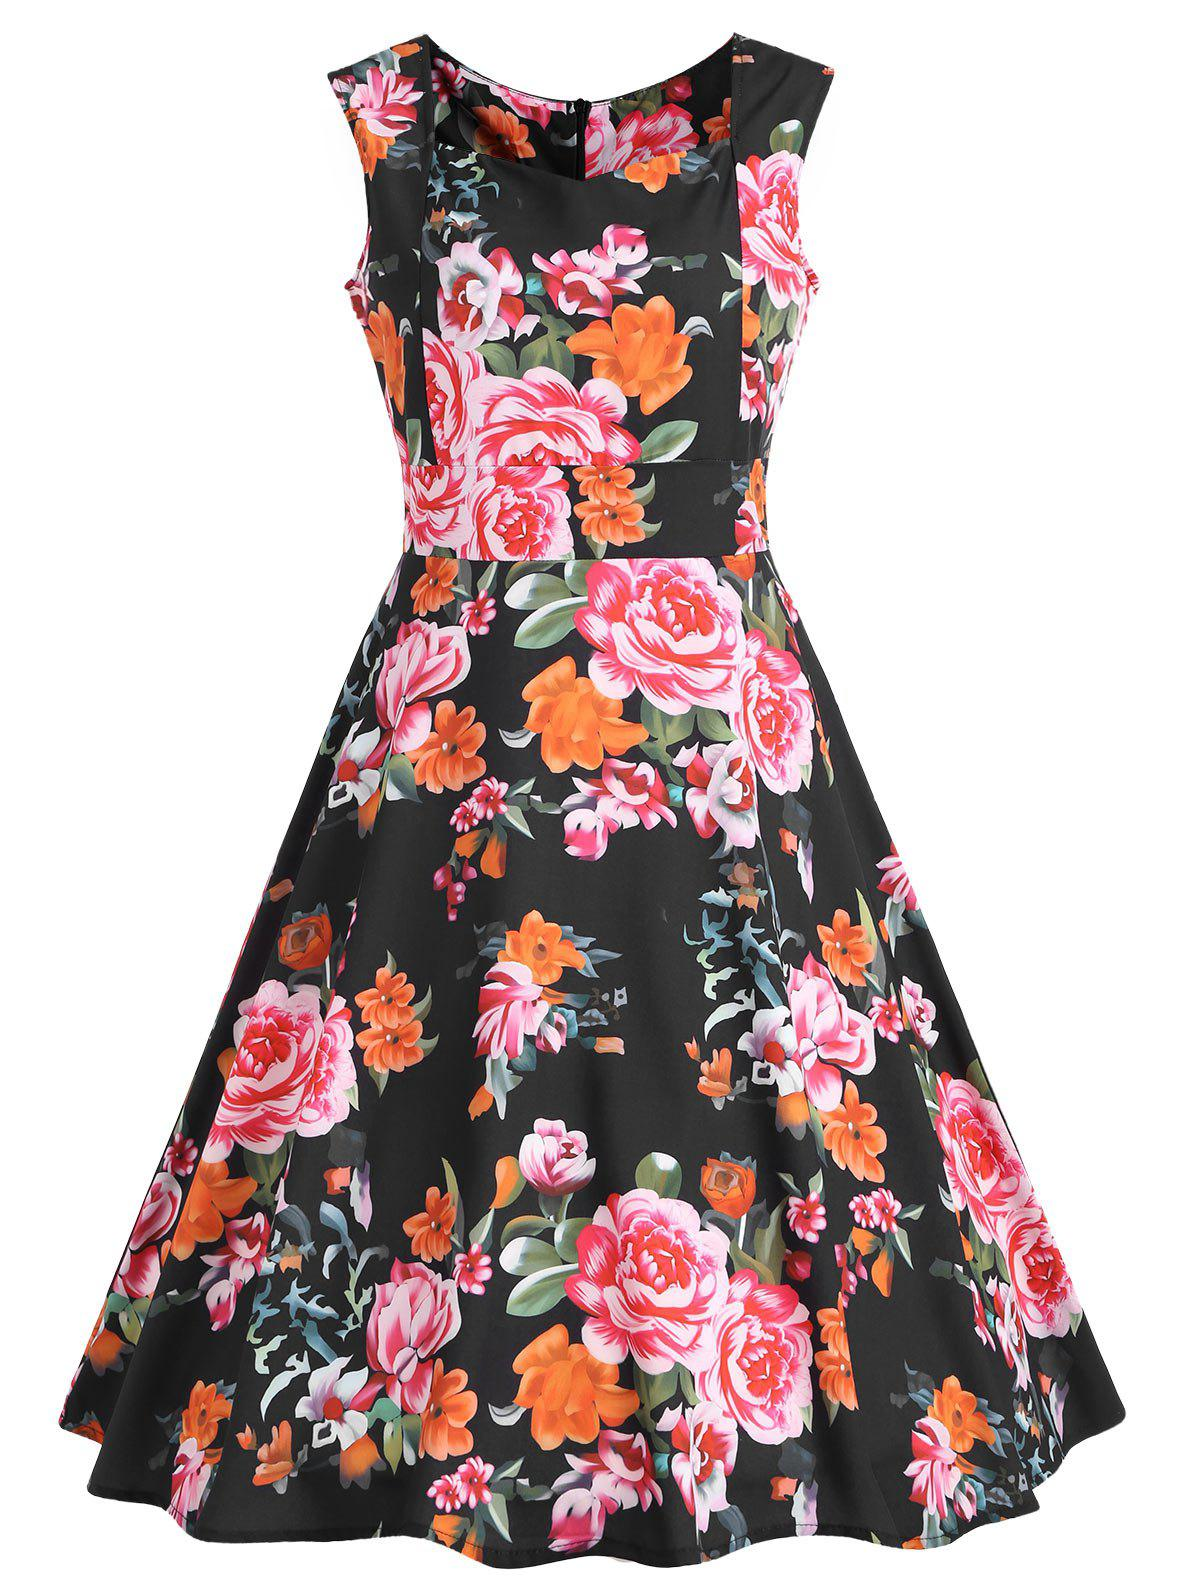 Fashion High Waisted Sweetheart Neck Floral Swing Dress